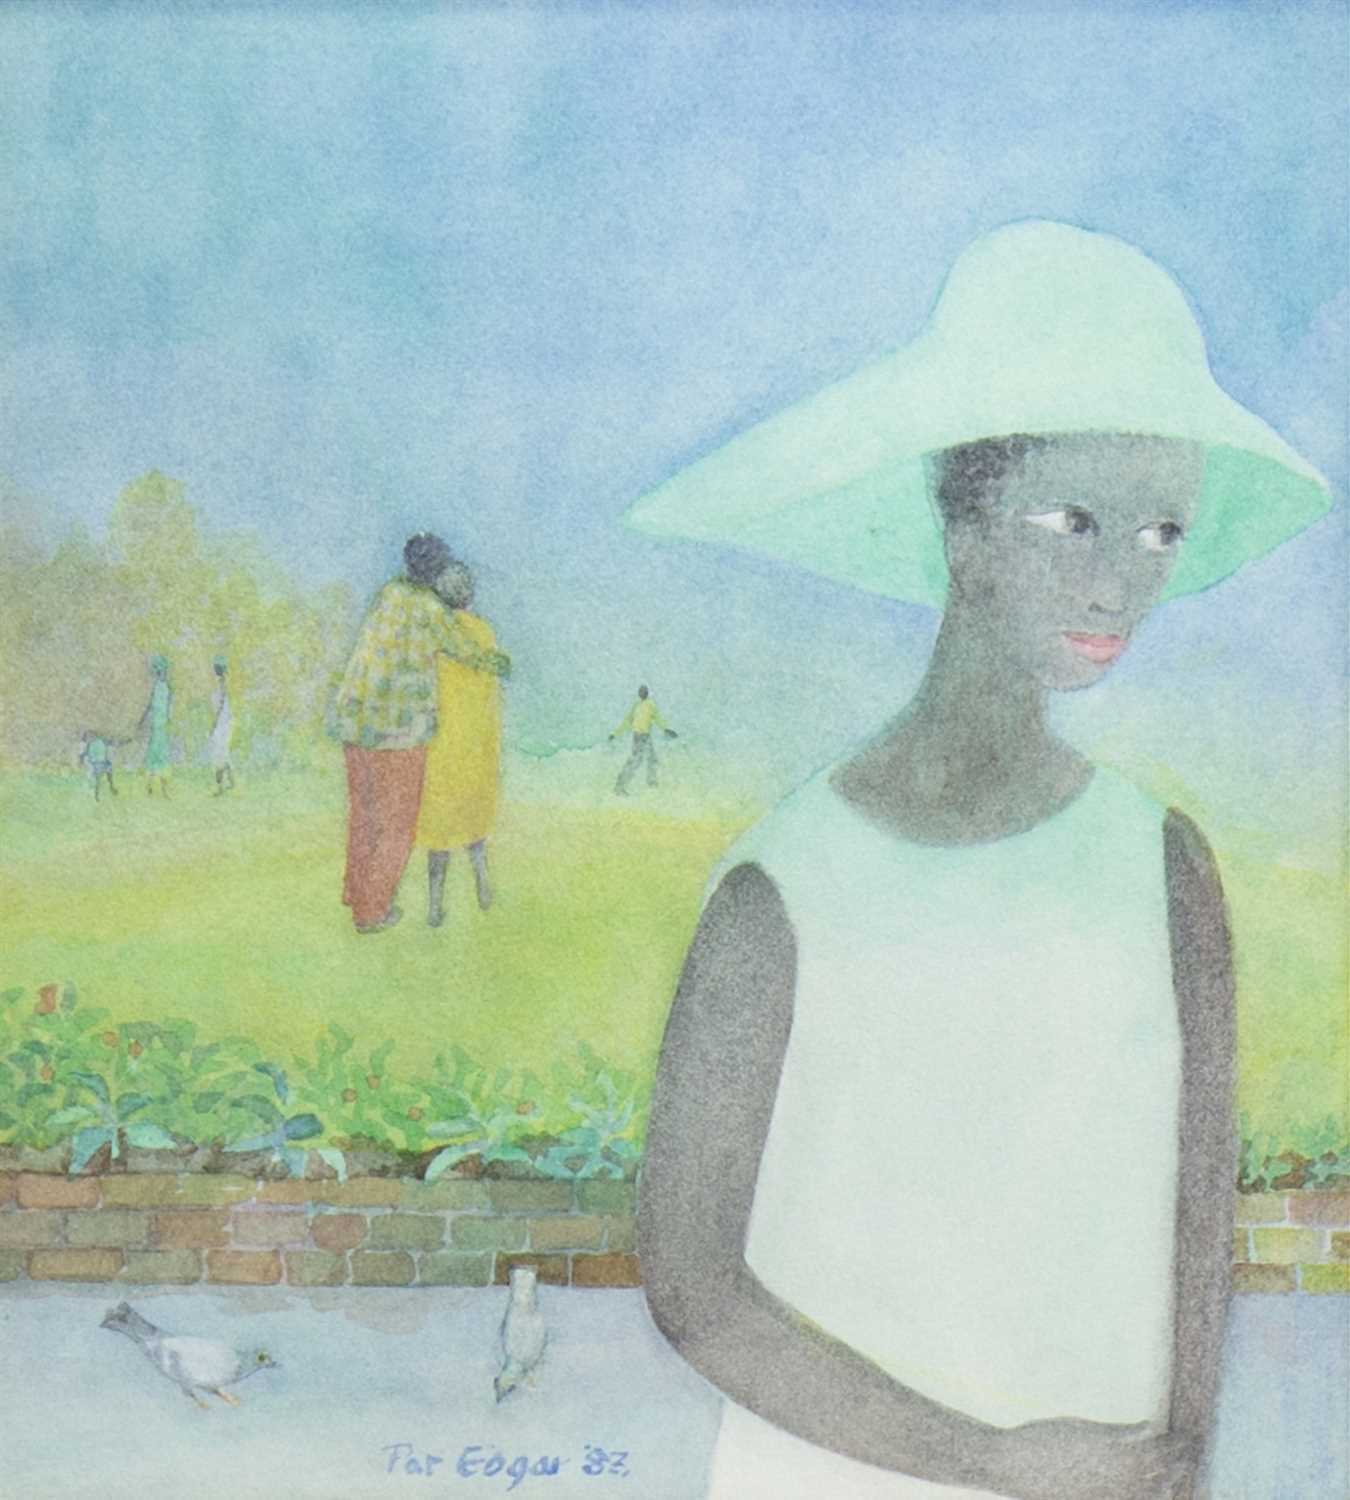 Lot 553-THE GREEN HAT, A WATERCOLOUR BY PAT EDGAR